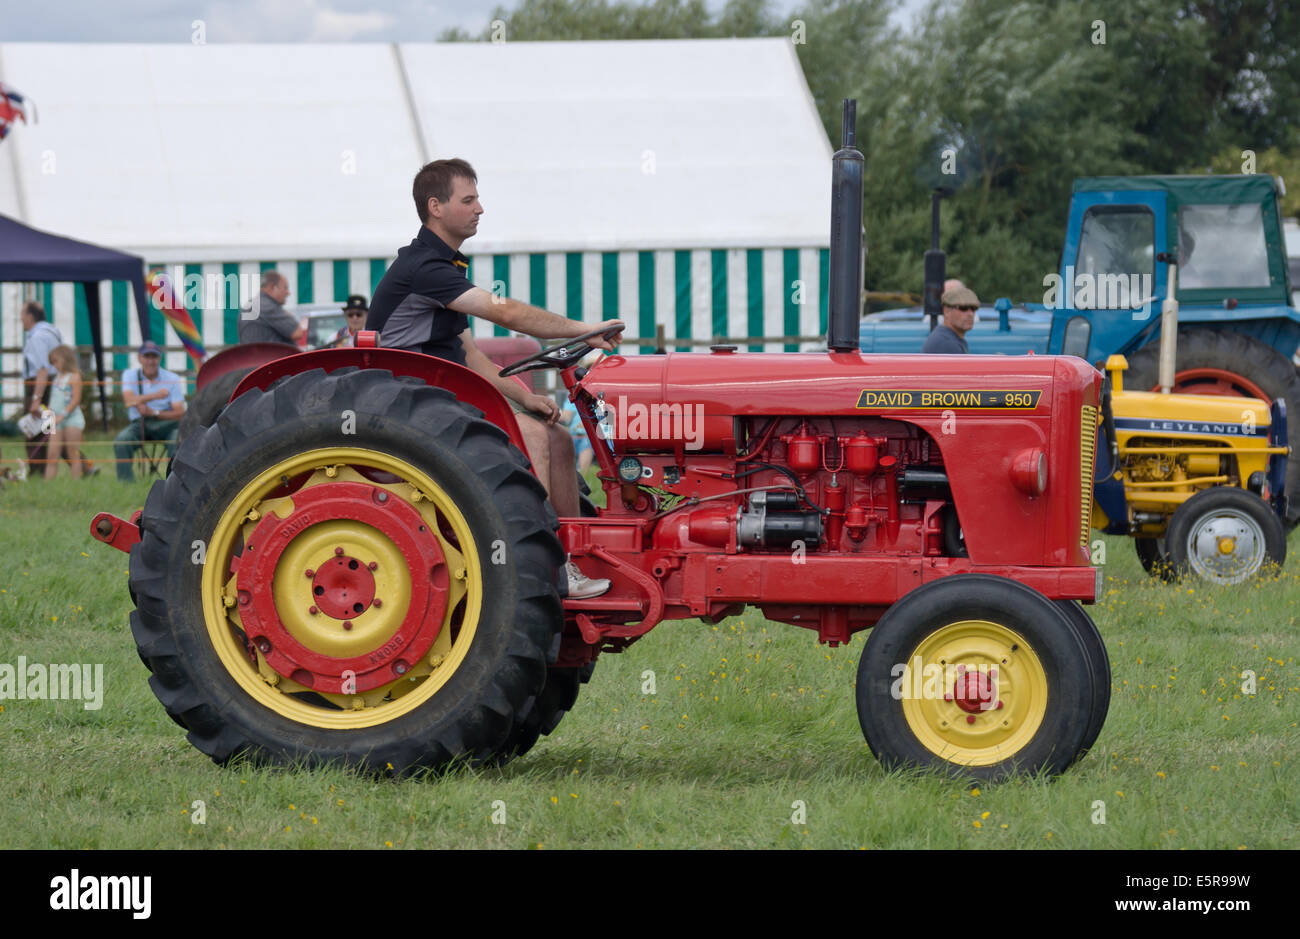 david brown 950 vintage tractor on display at the bucks country fair -  stock image